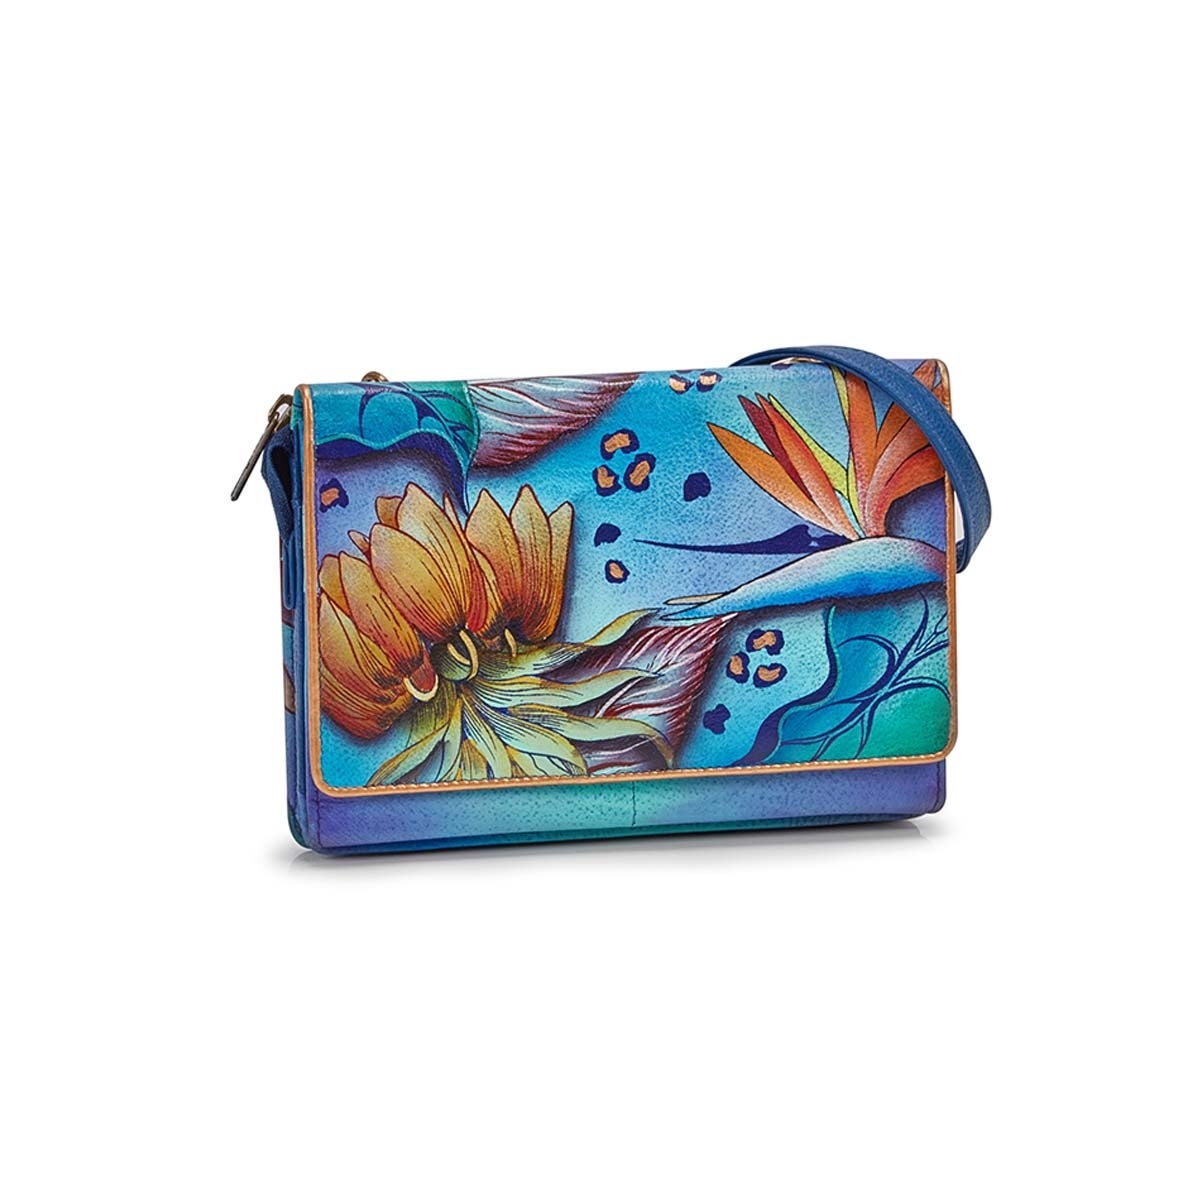 Printed Tropical Dream convert. clutch